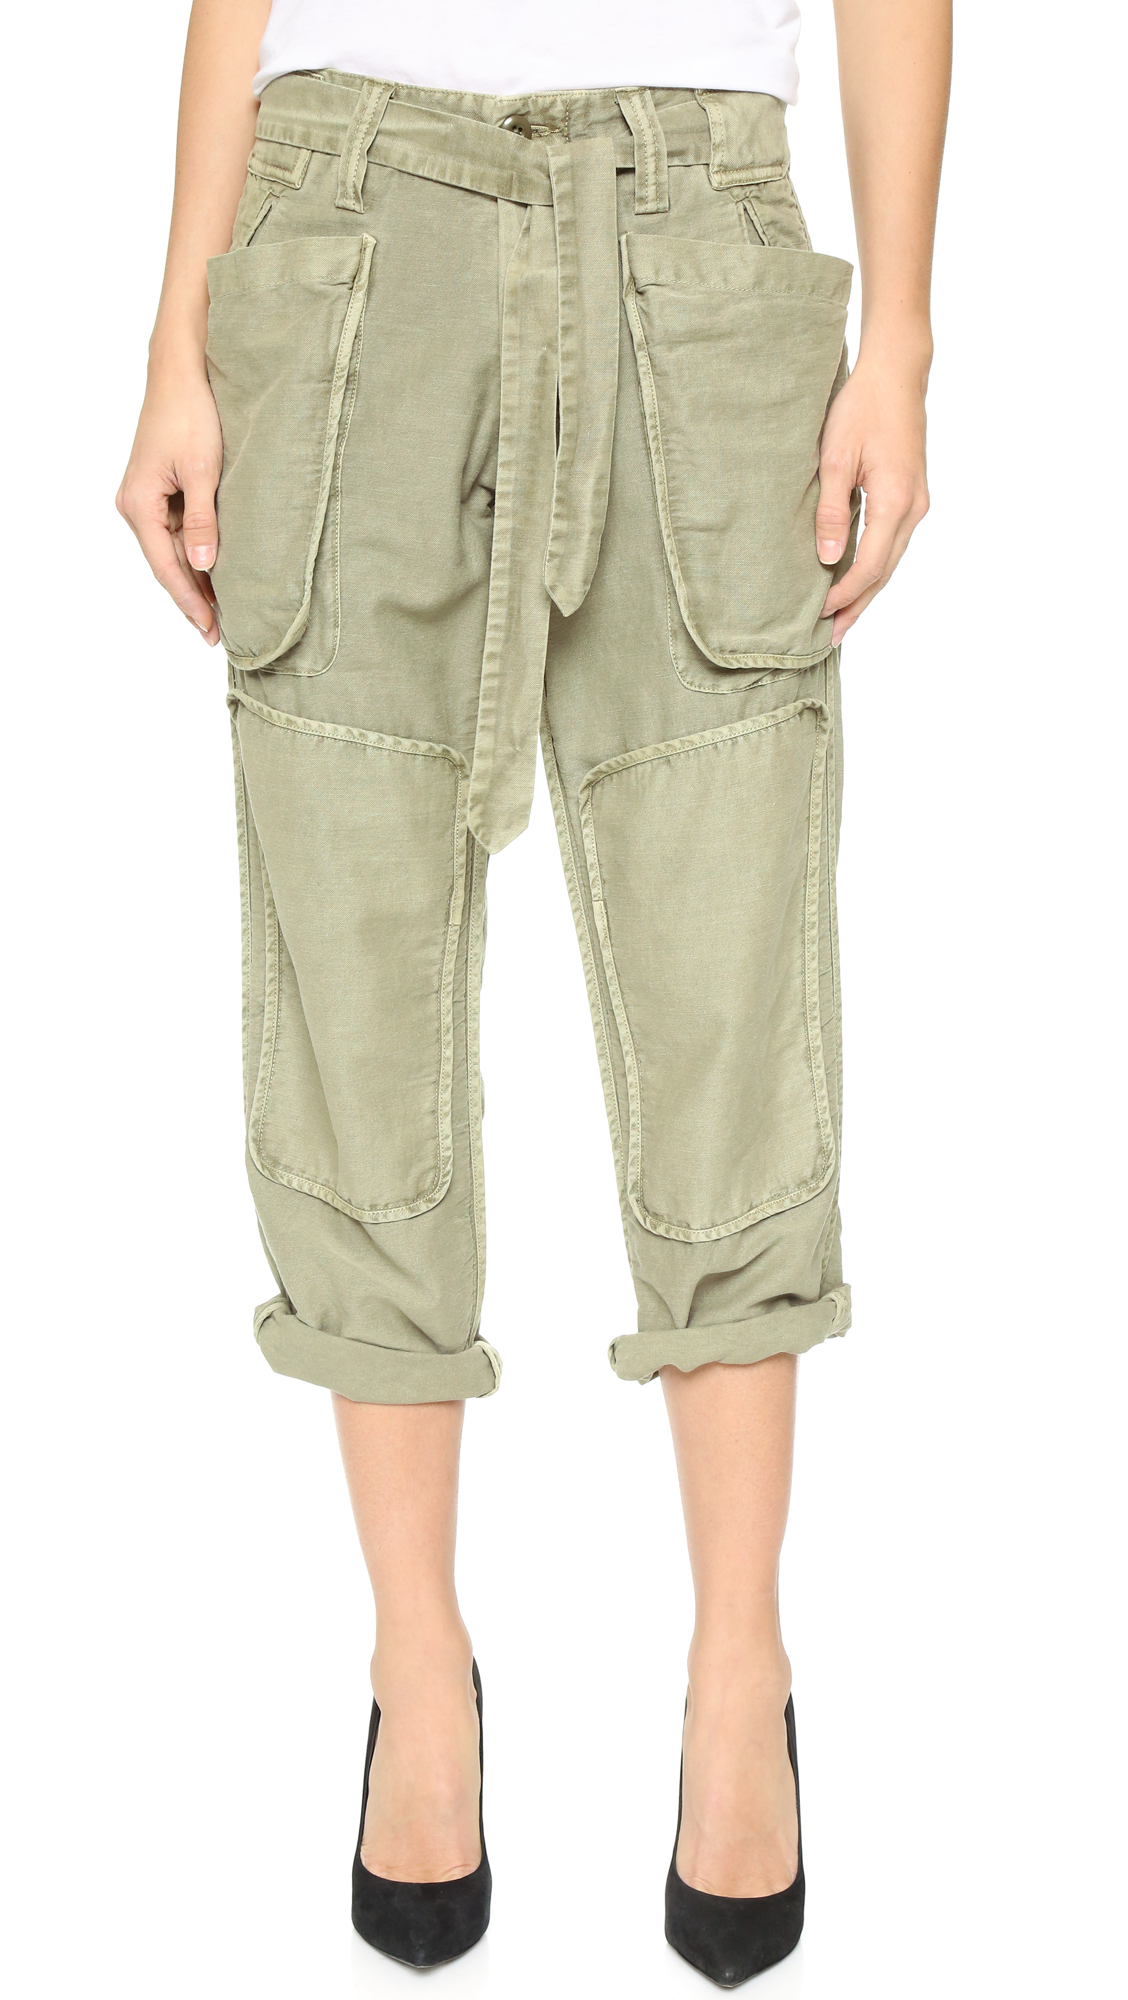 TROUSERS - Bermuda shorts NLST Clearance Purchase egsXWNp7